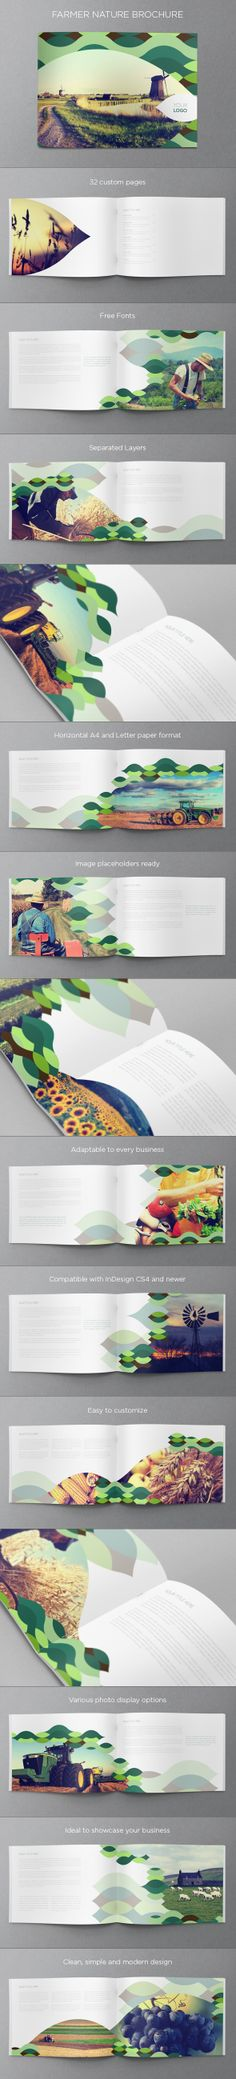 Farmer Nature Brochure. Download here: http://graphicriver.net/item/green-nature-brochure/6151806?ref=abradesign #design #brochure